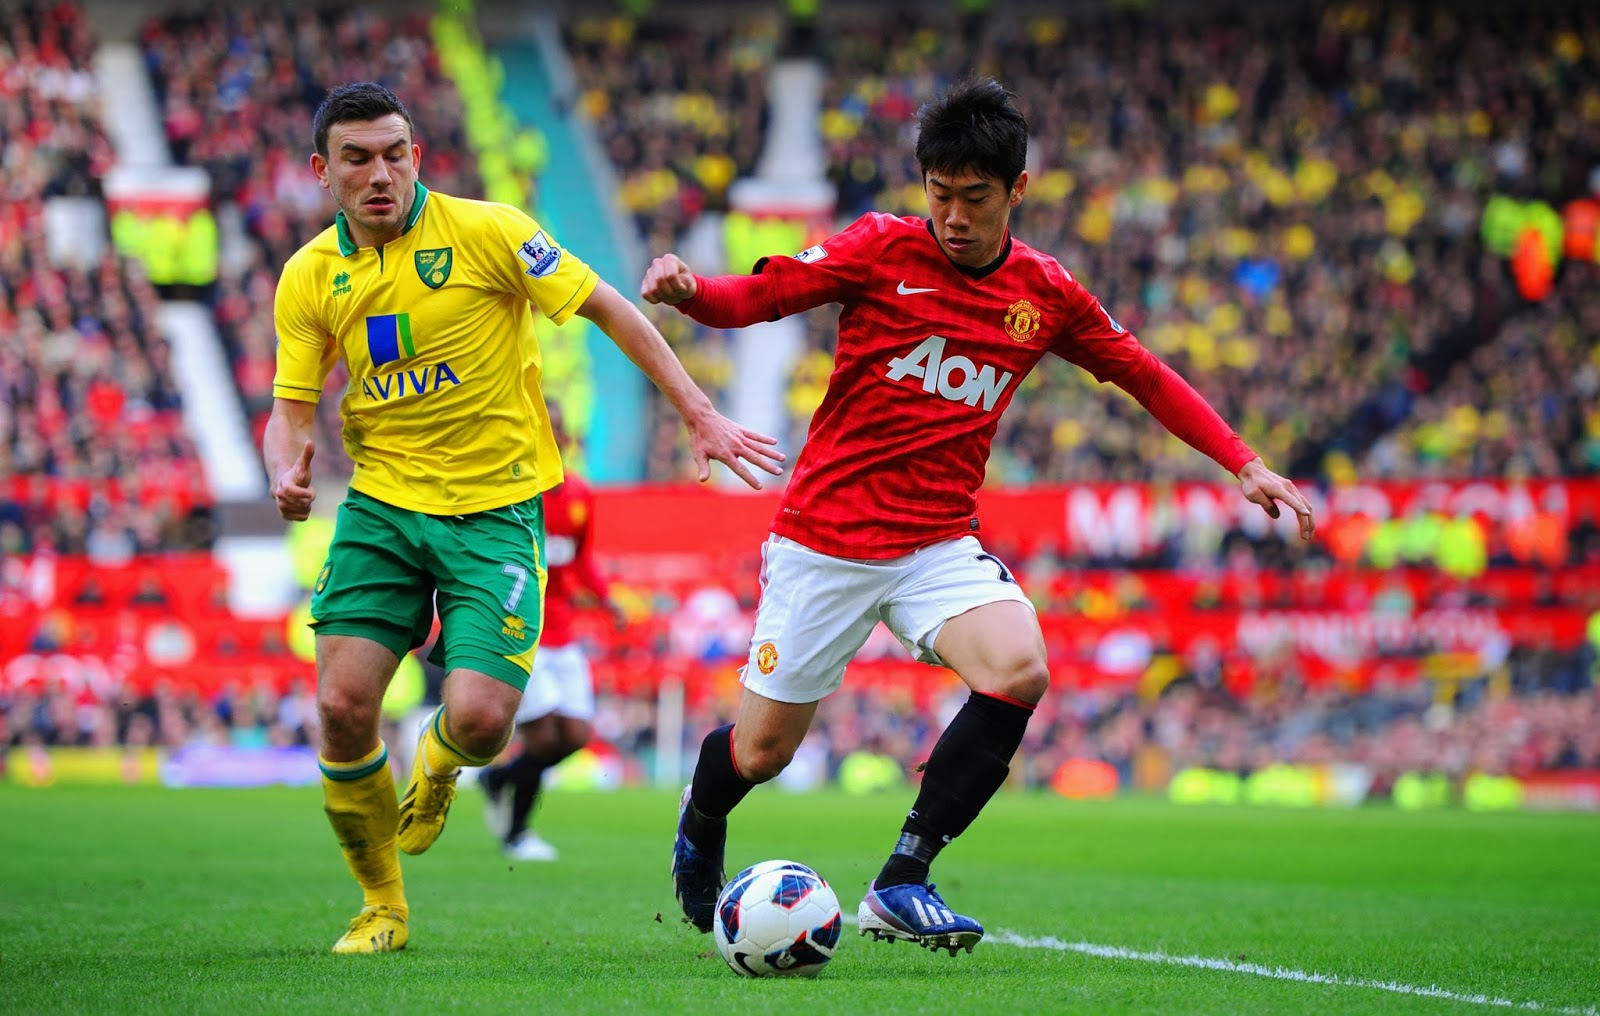 Norwich City Vs Manchester United 0 1 Highlights